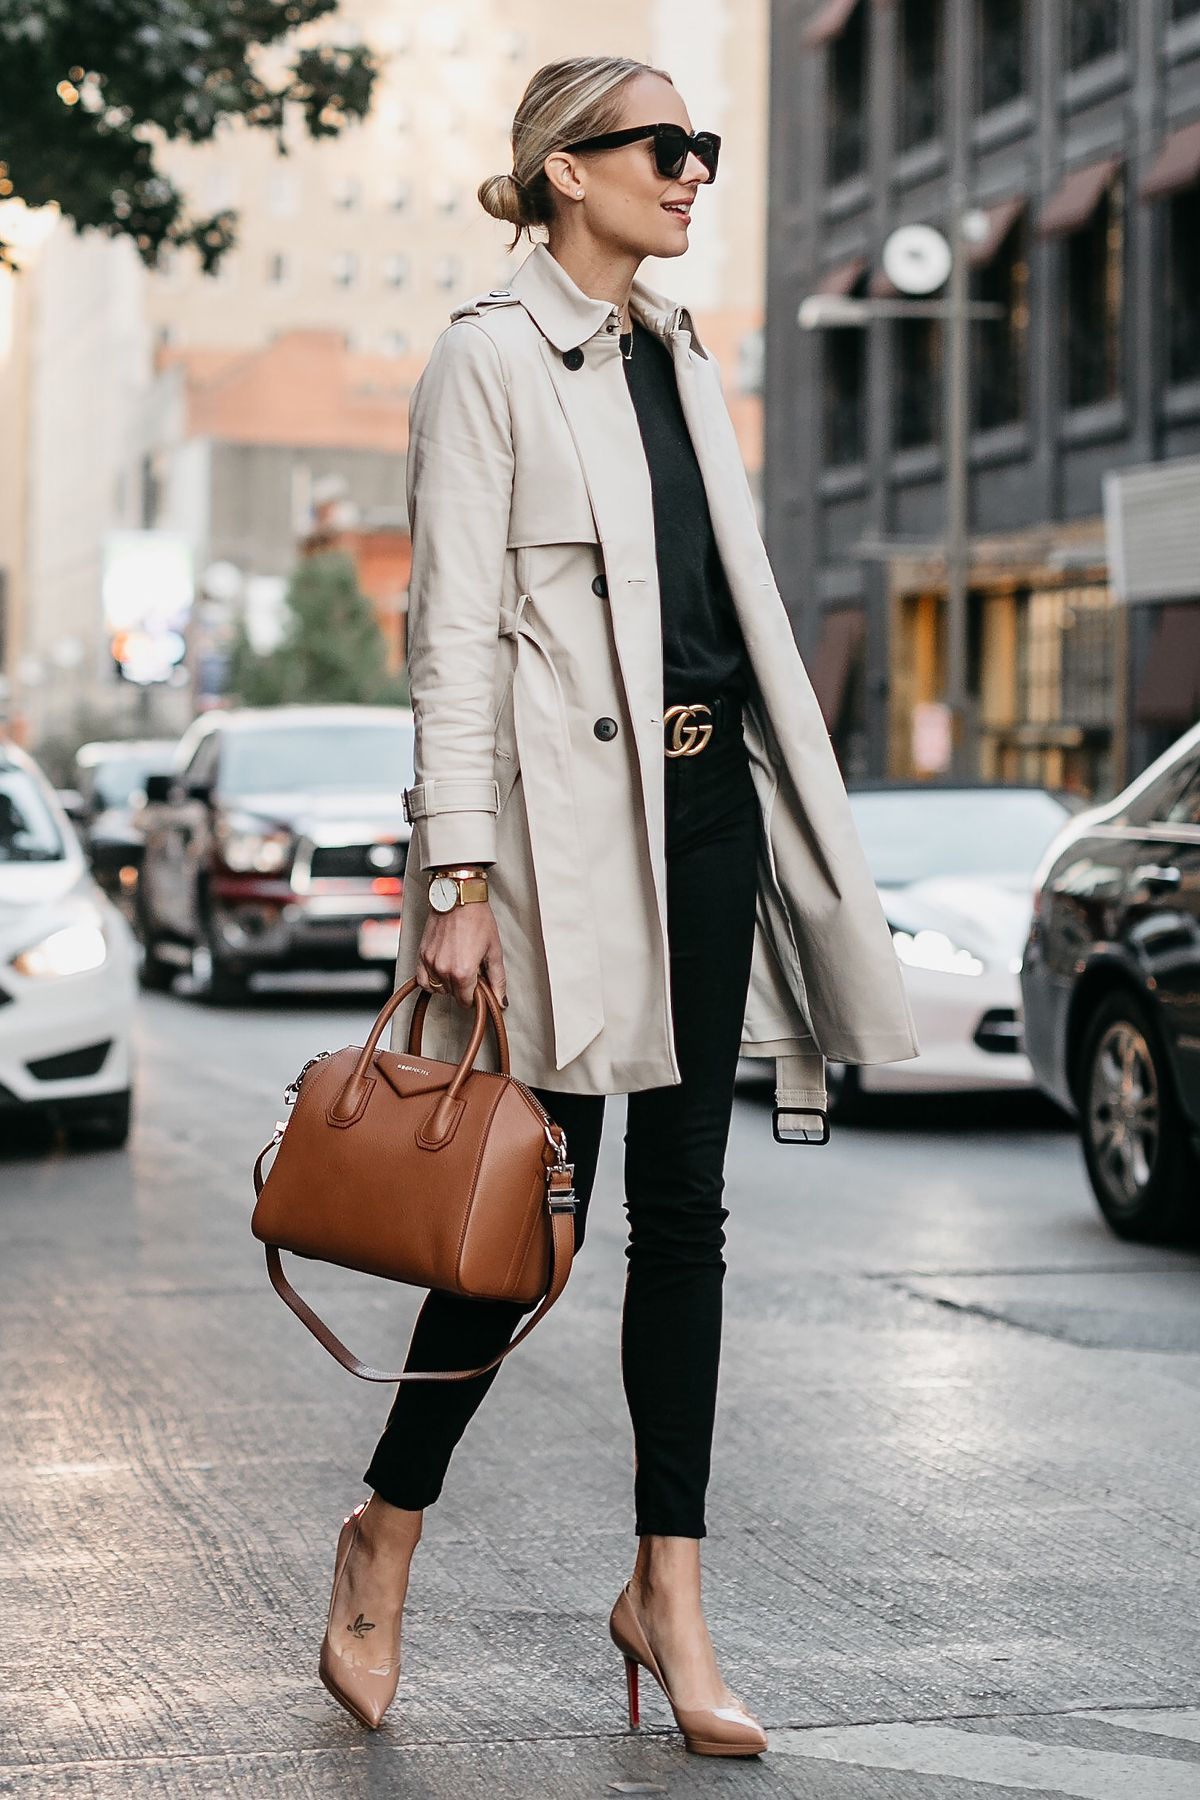 b7ed0f7efdb Blonde Woman Wearing Club Monaco Trench Coat Black Sweater Black Skinny  Jeans Gucci Marmont Belt Nude Pumps Givenchy Antigona Cognac Satchel Fashion  Jackson ...